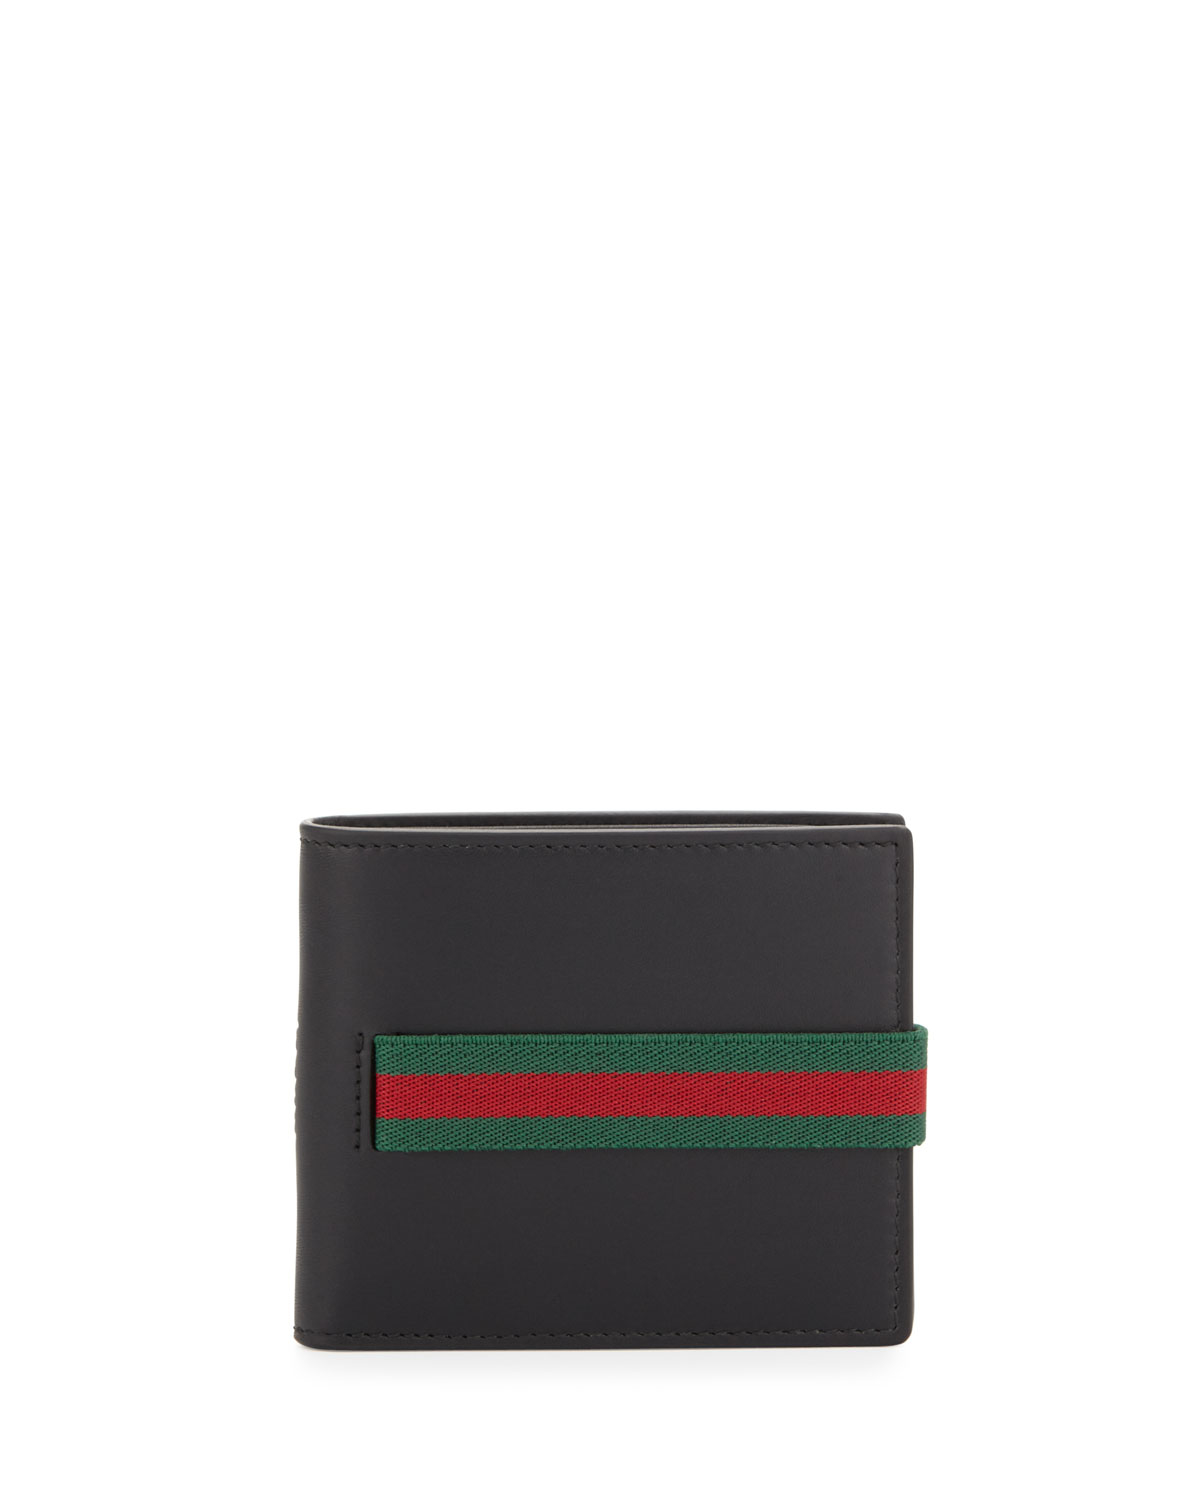 91dce61aaa06 Lyst - Gucci Elastic Leather Wallet in Black for Men